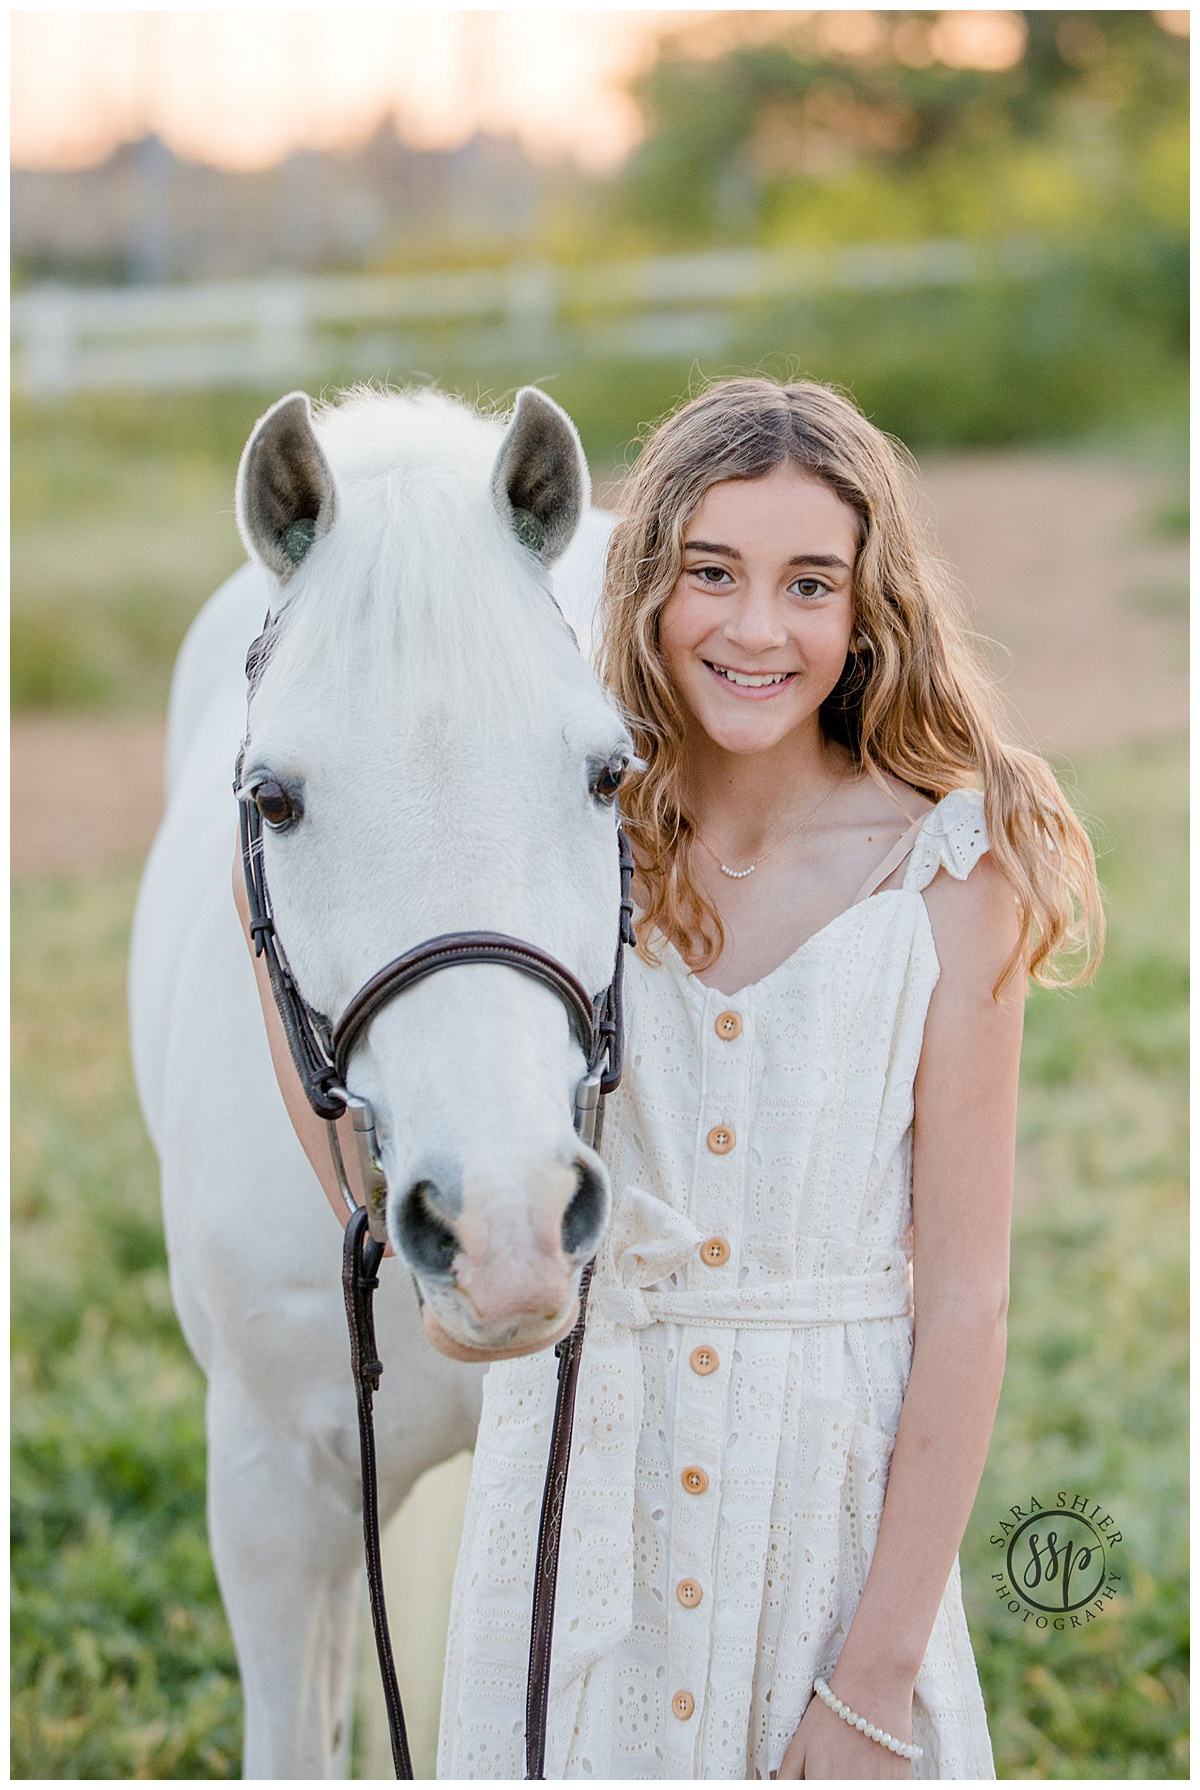 Black Background Horse Rider Equine Photographer Southern California Sara Shier Photography SoCal Equestrian Cowgirl USEF_0229.jpg